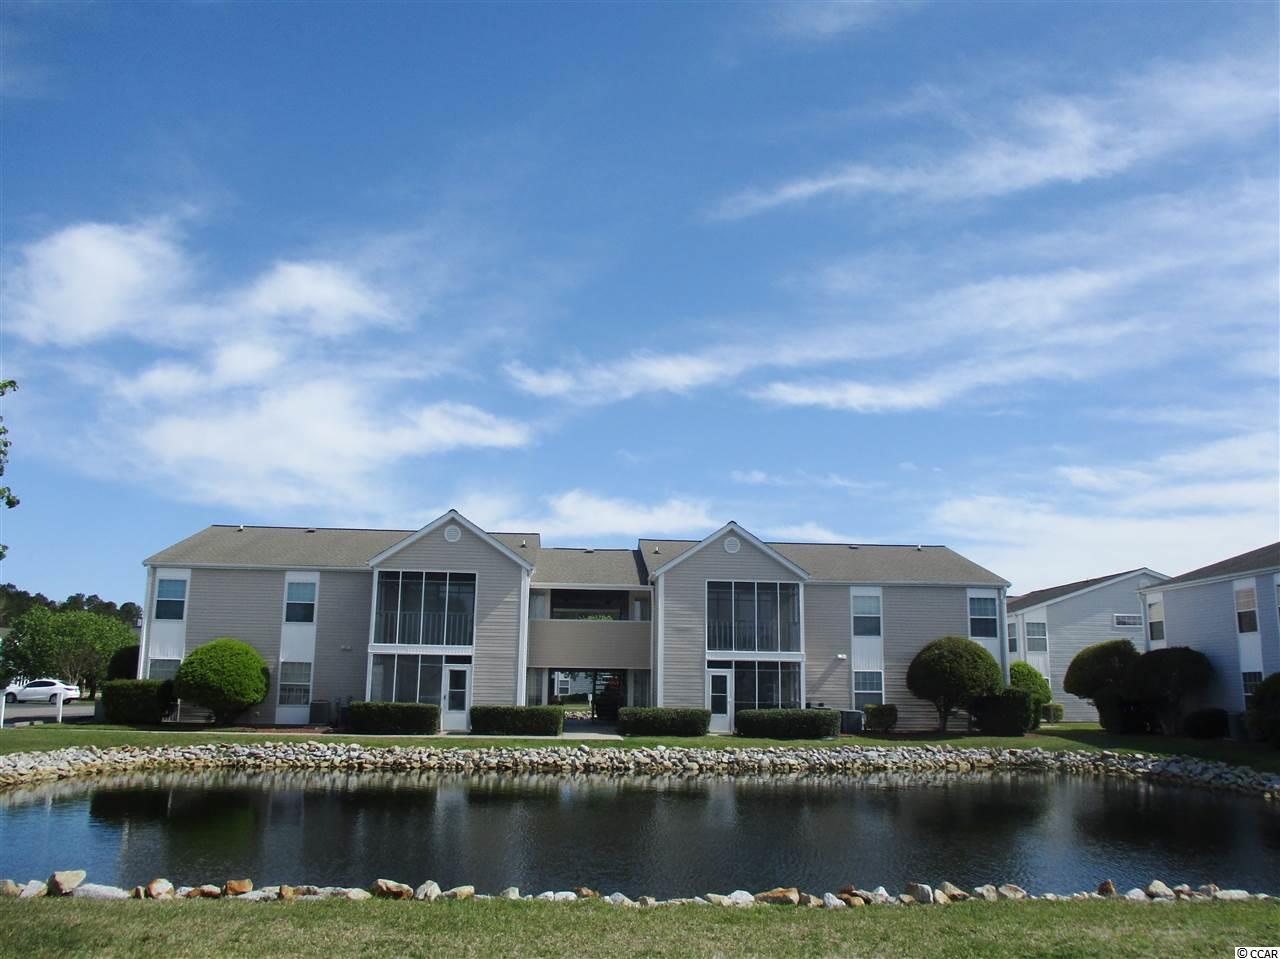 Wonderful well maintained desirable community close to the beach! South Bay lakes is in a prime location in Surfside Beach, surrounded by beautiful lakes and ponds! This is a well maintained second floor condominium! Light and bright with an open floor plan! Spacious kitchen, dining area, and living room open up to a covered patio that overlooks a scenic water view! Two large bedrooms, each with their own bathroom with newer vanities! HVAC replaced in 2012. This is a great opportunity to get your place, at the beach, whether a primary residence, second home, or long term rental! Spend your summer at the gorgeous community pool, that overlooks,a huge lake or just a short drive straight into the popular Surside Beach area, with pier, amazing beaches and great restaurants! Also just a short drive to the mall, airport and the popular Murrells Inlet Marshwalk, which has more shopping and dining right on Creek Inlet!